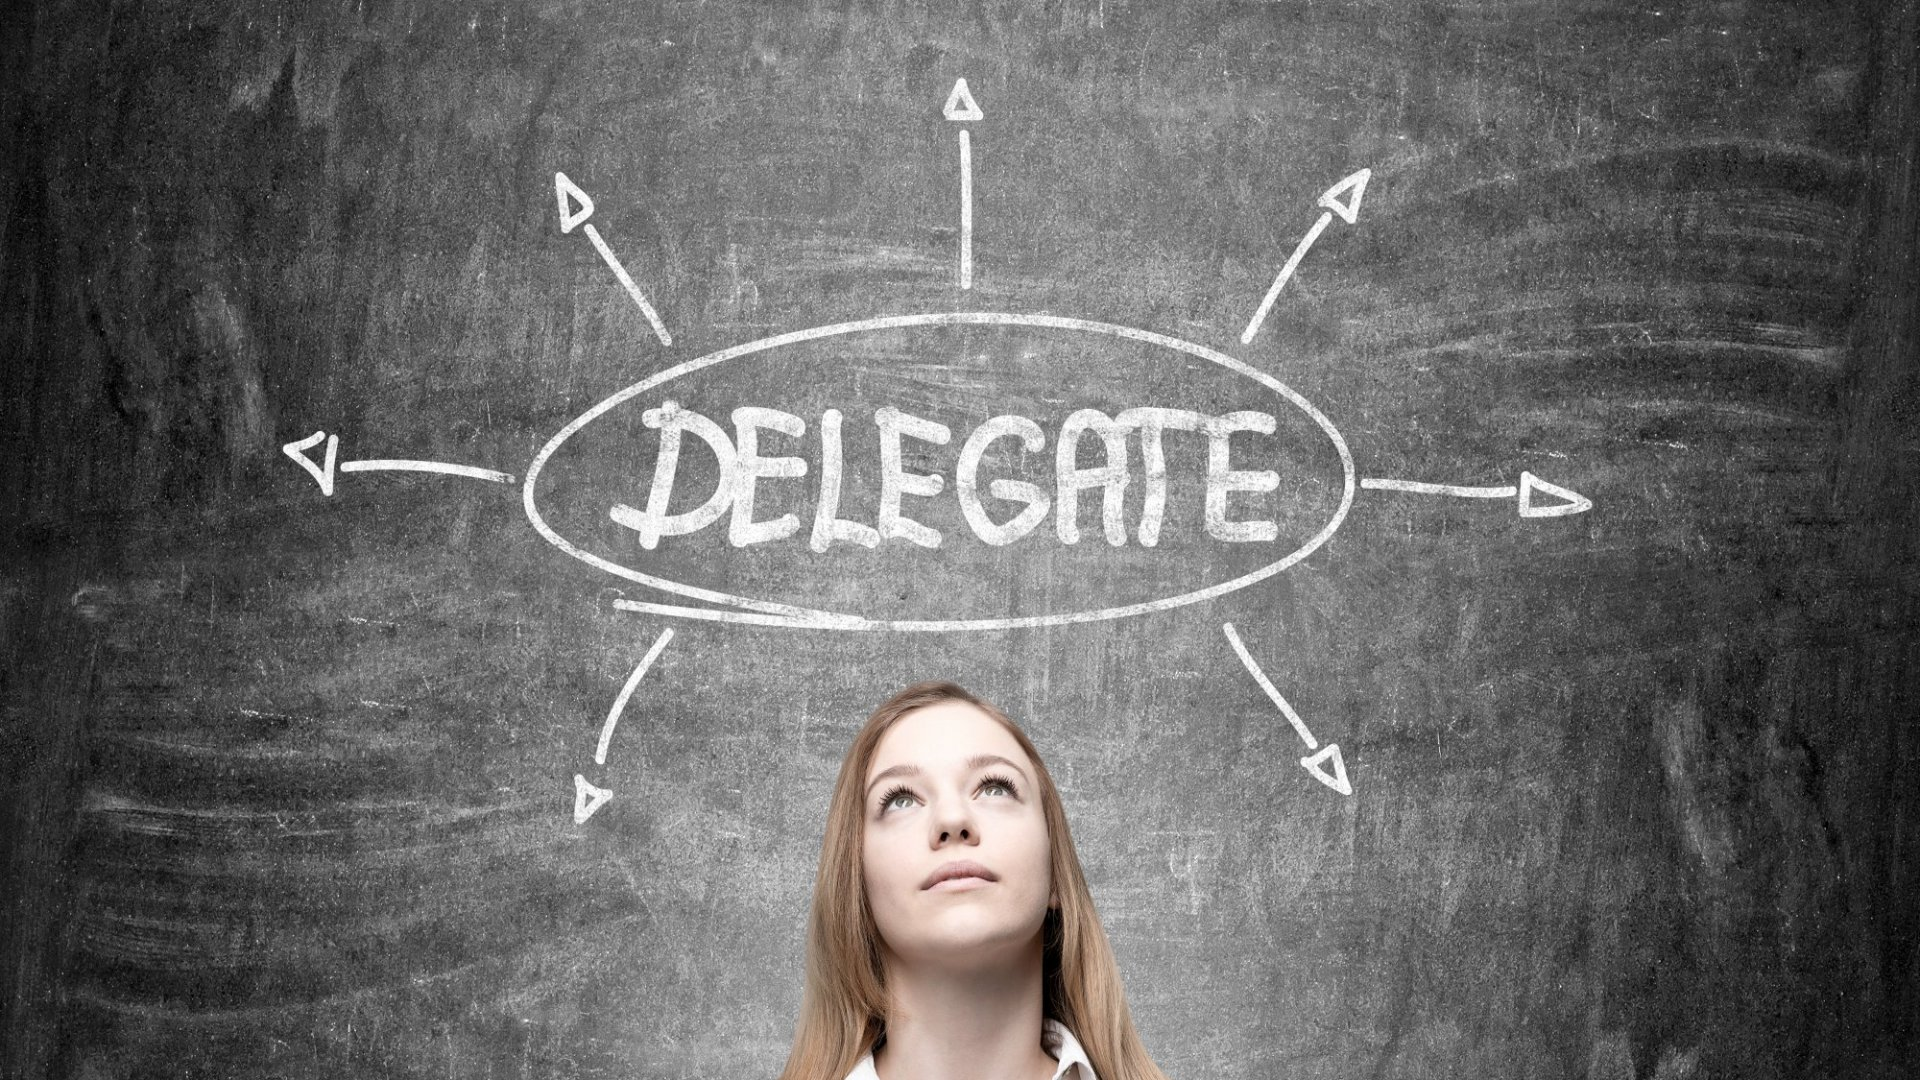 The 5 Levels of Delegation You Need to Know to Lead Well